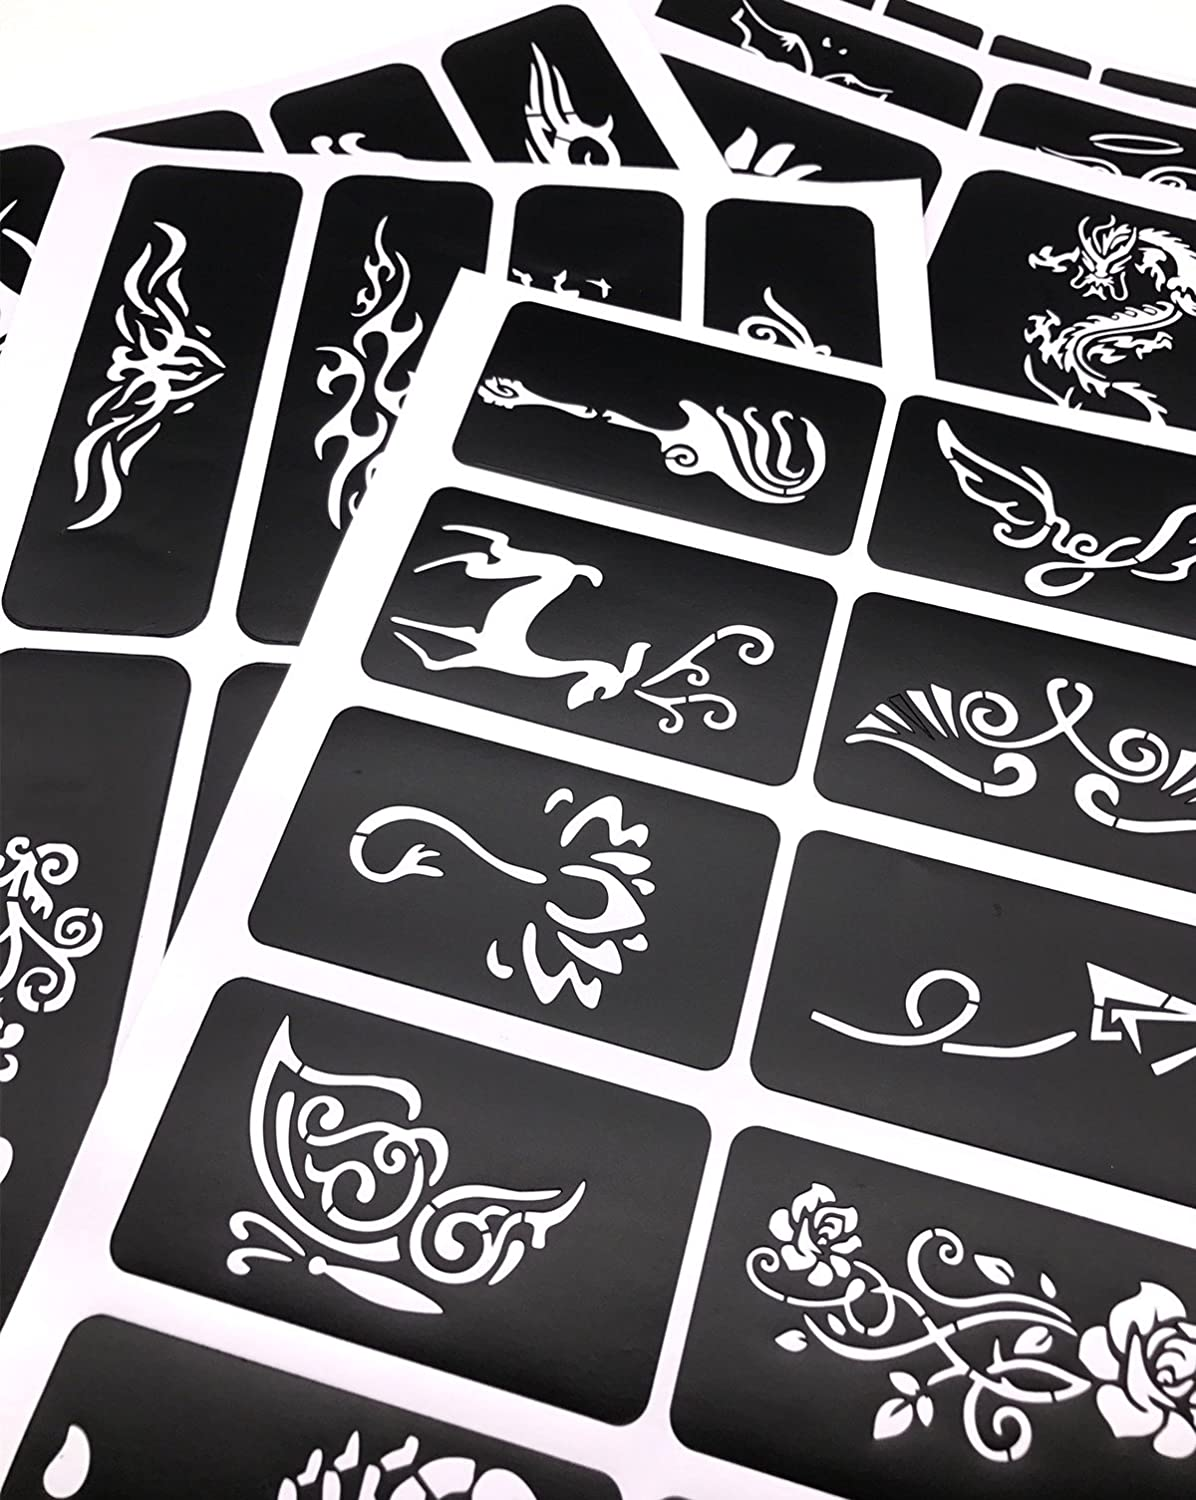 10 Sheets Crafts Adhesive Henna Tattoo Stencils Templates For Henna